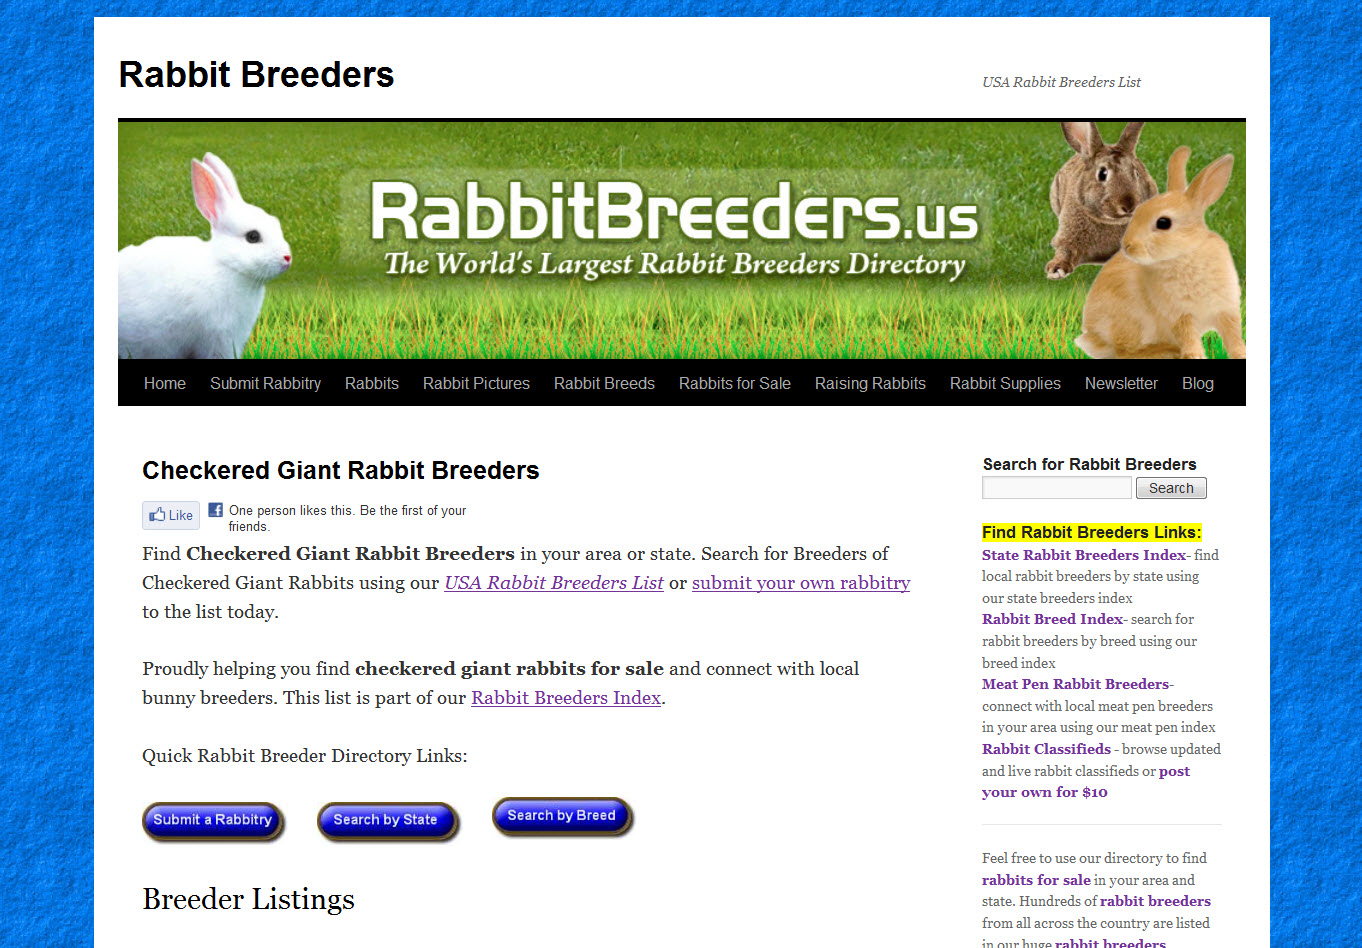 Checkered Giant Rabbits for Sale